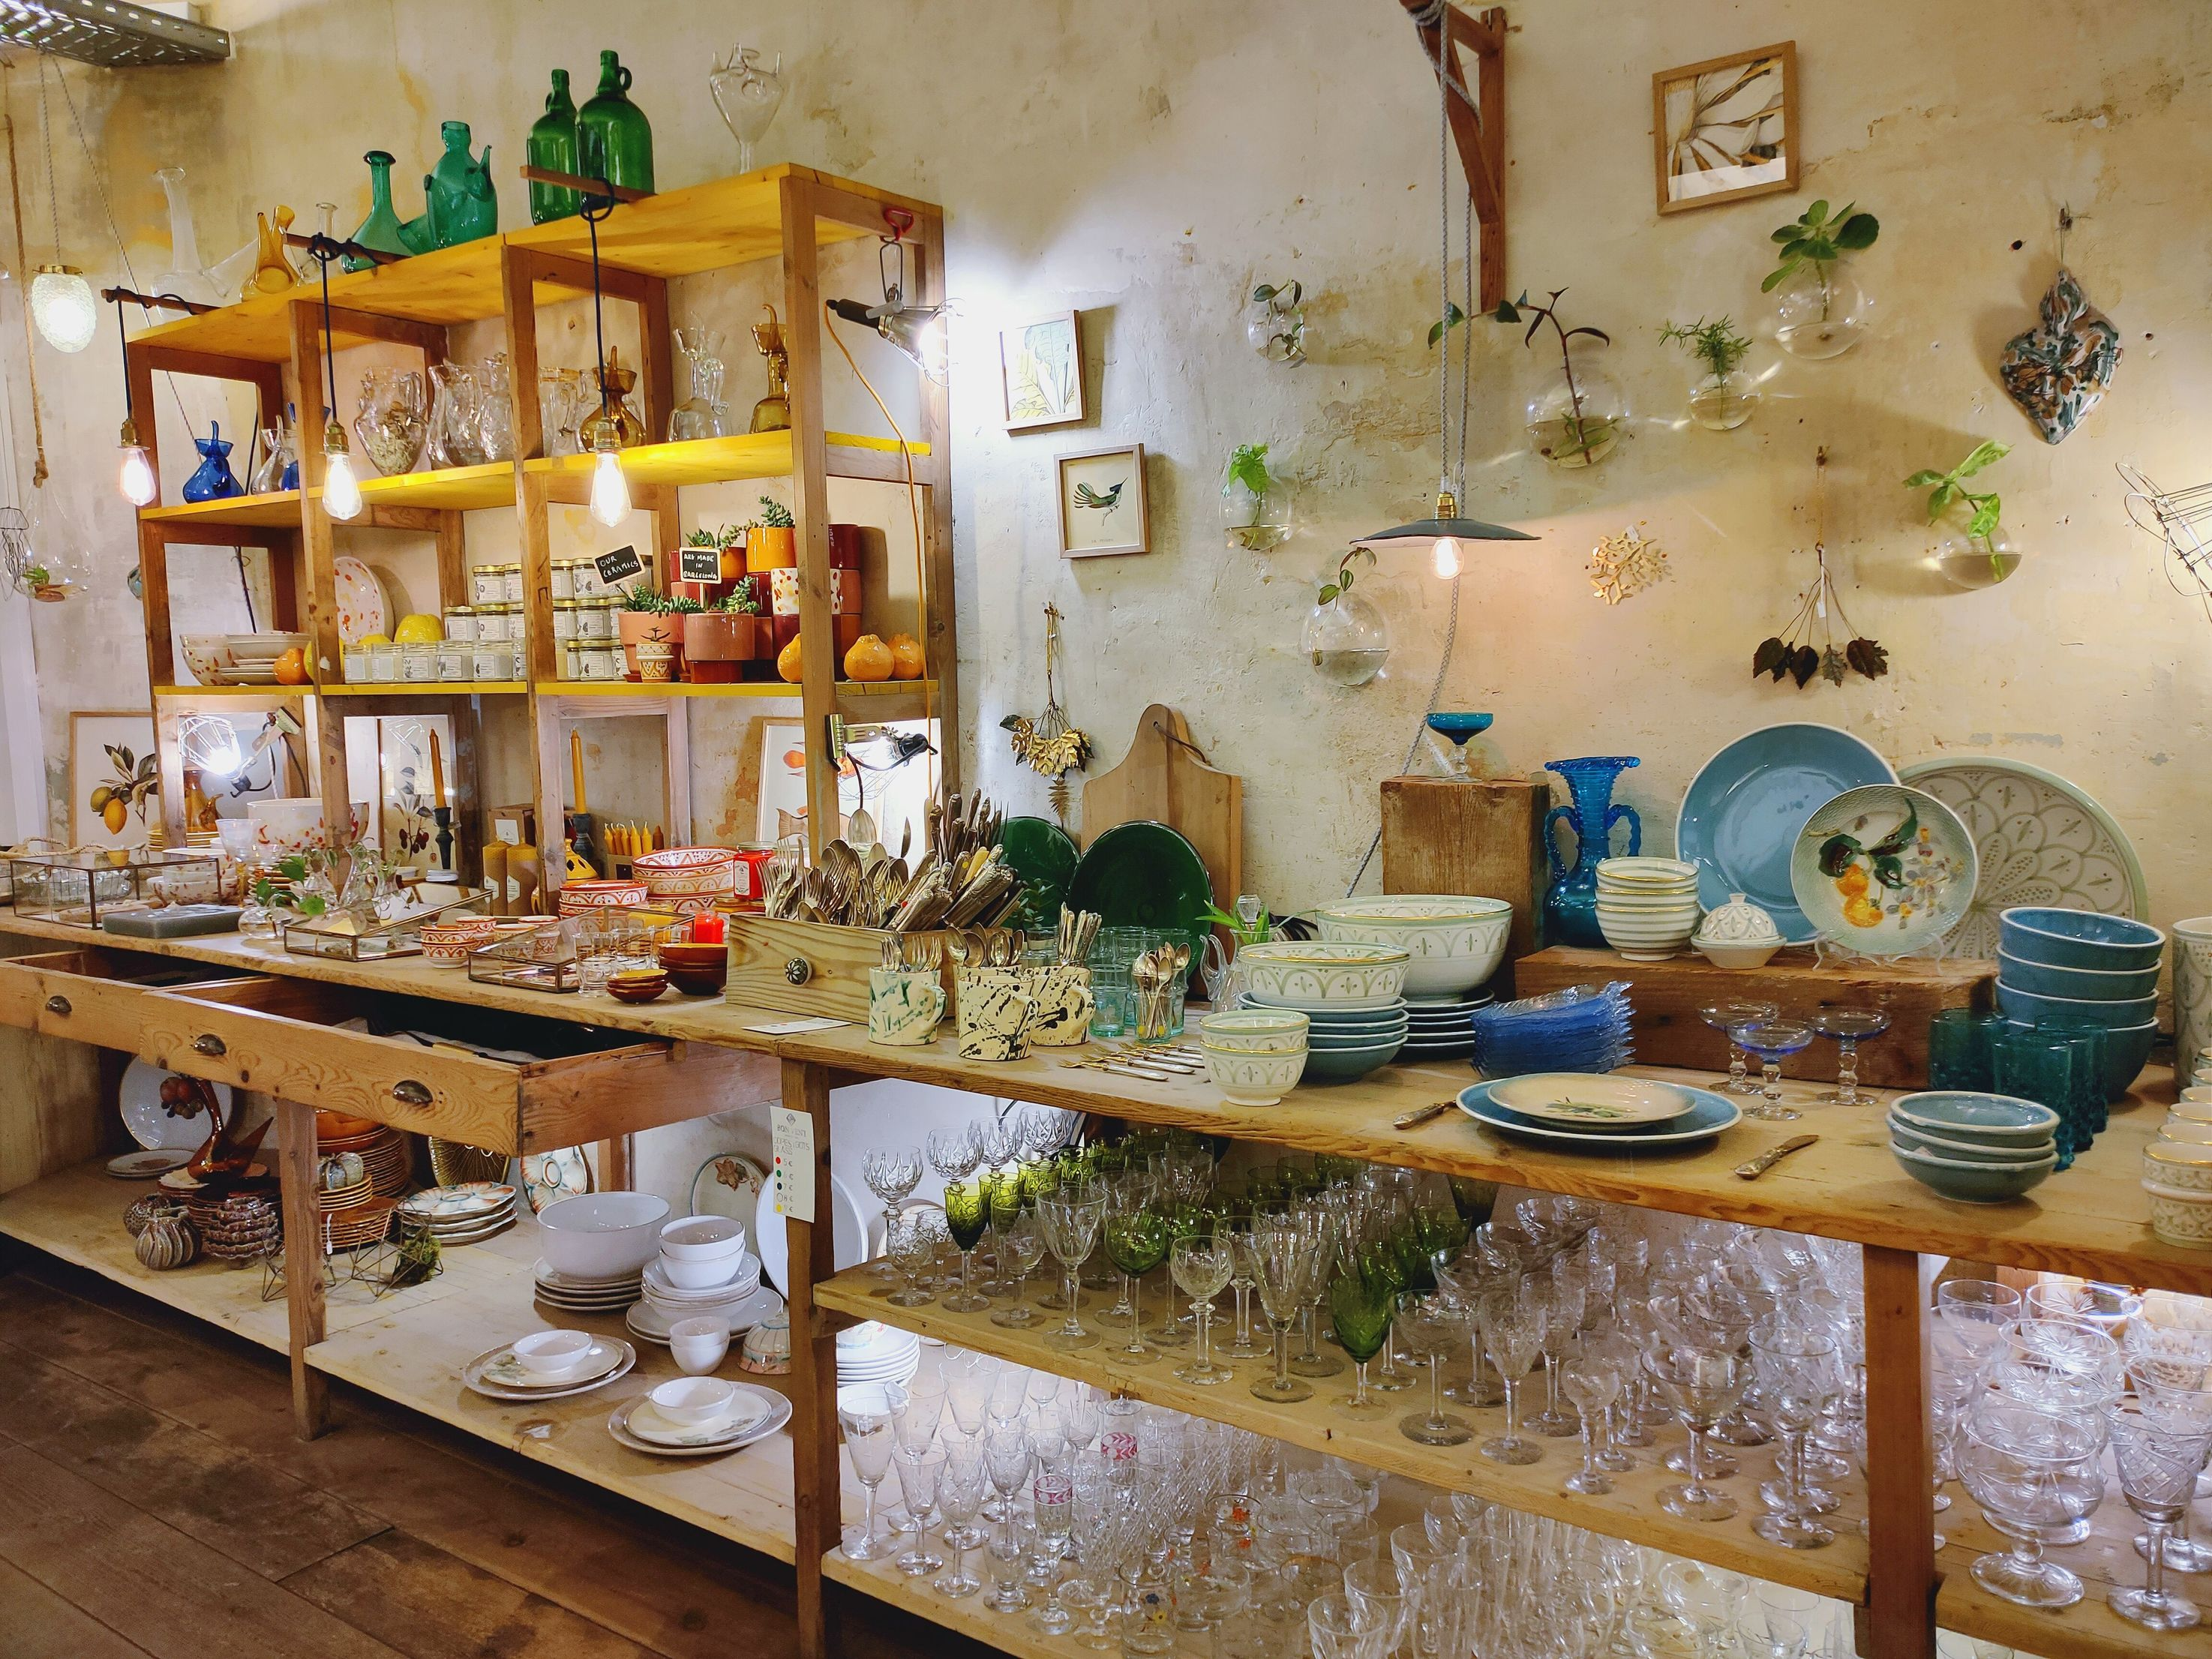 Bon Vent - slow Mediterranean living shop in Barcelona